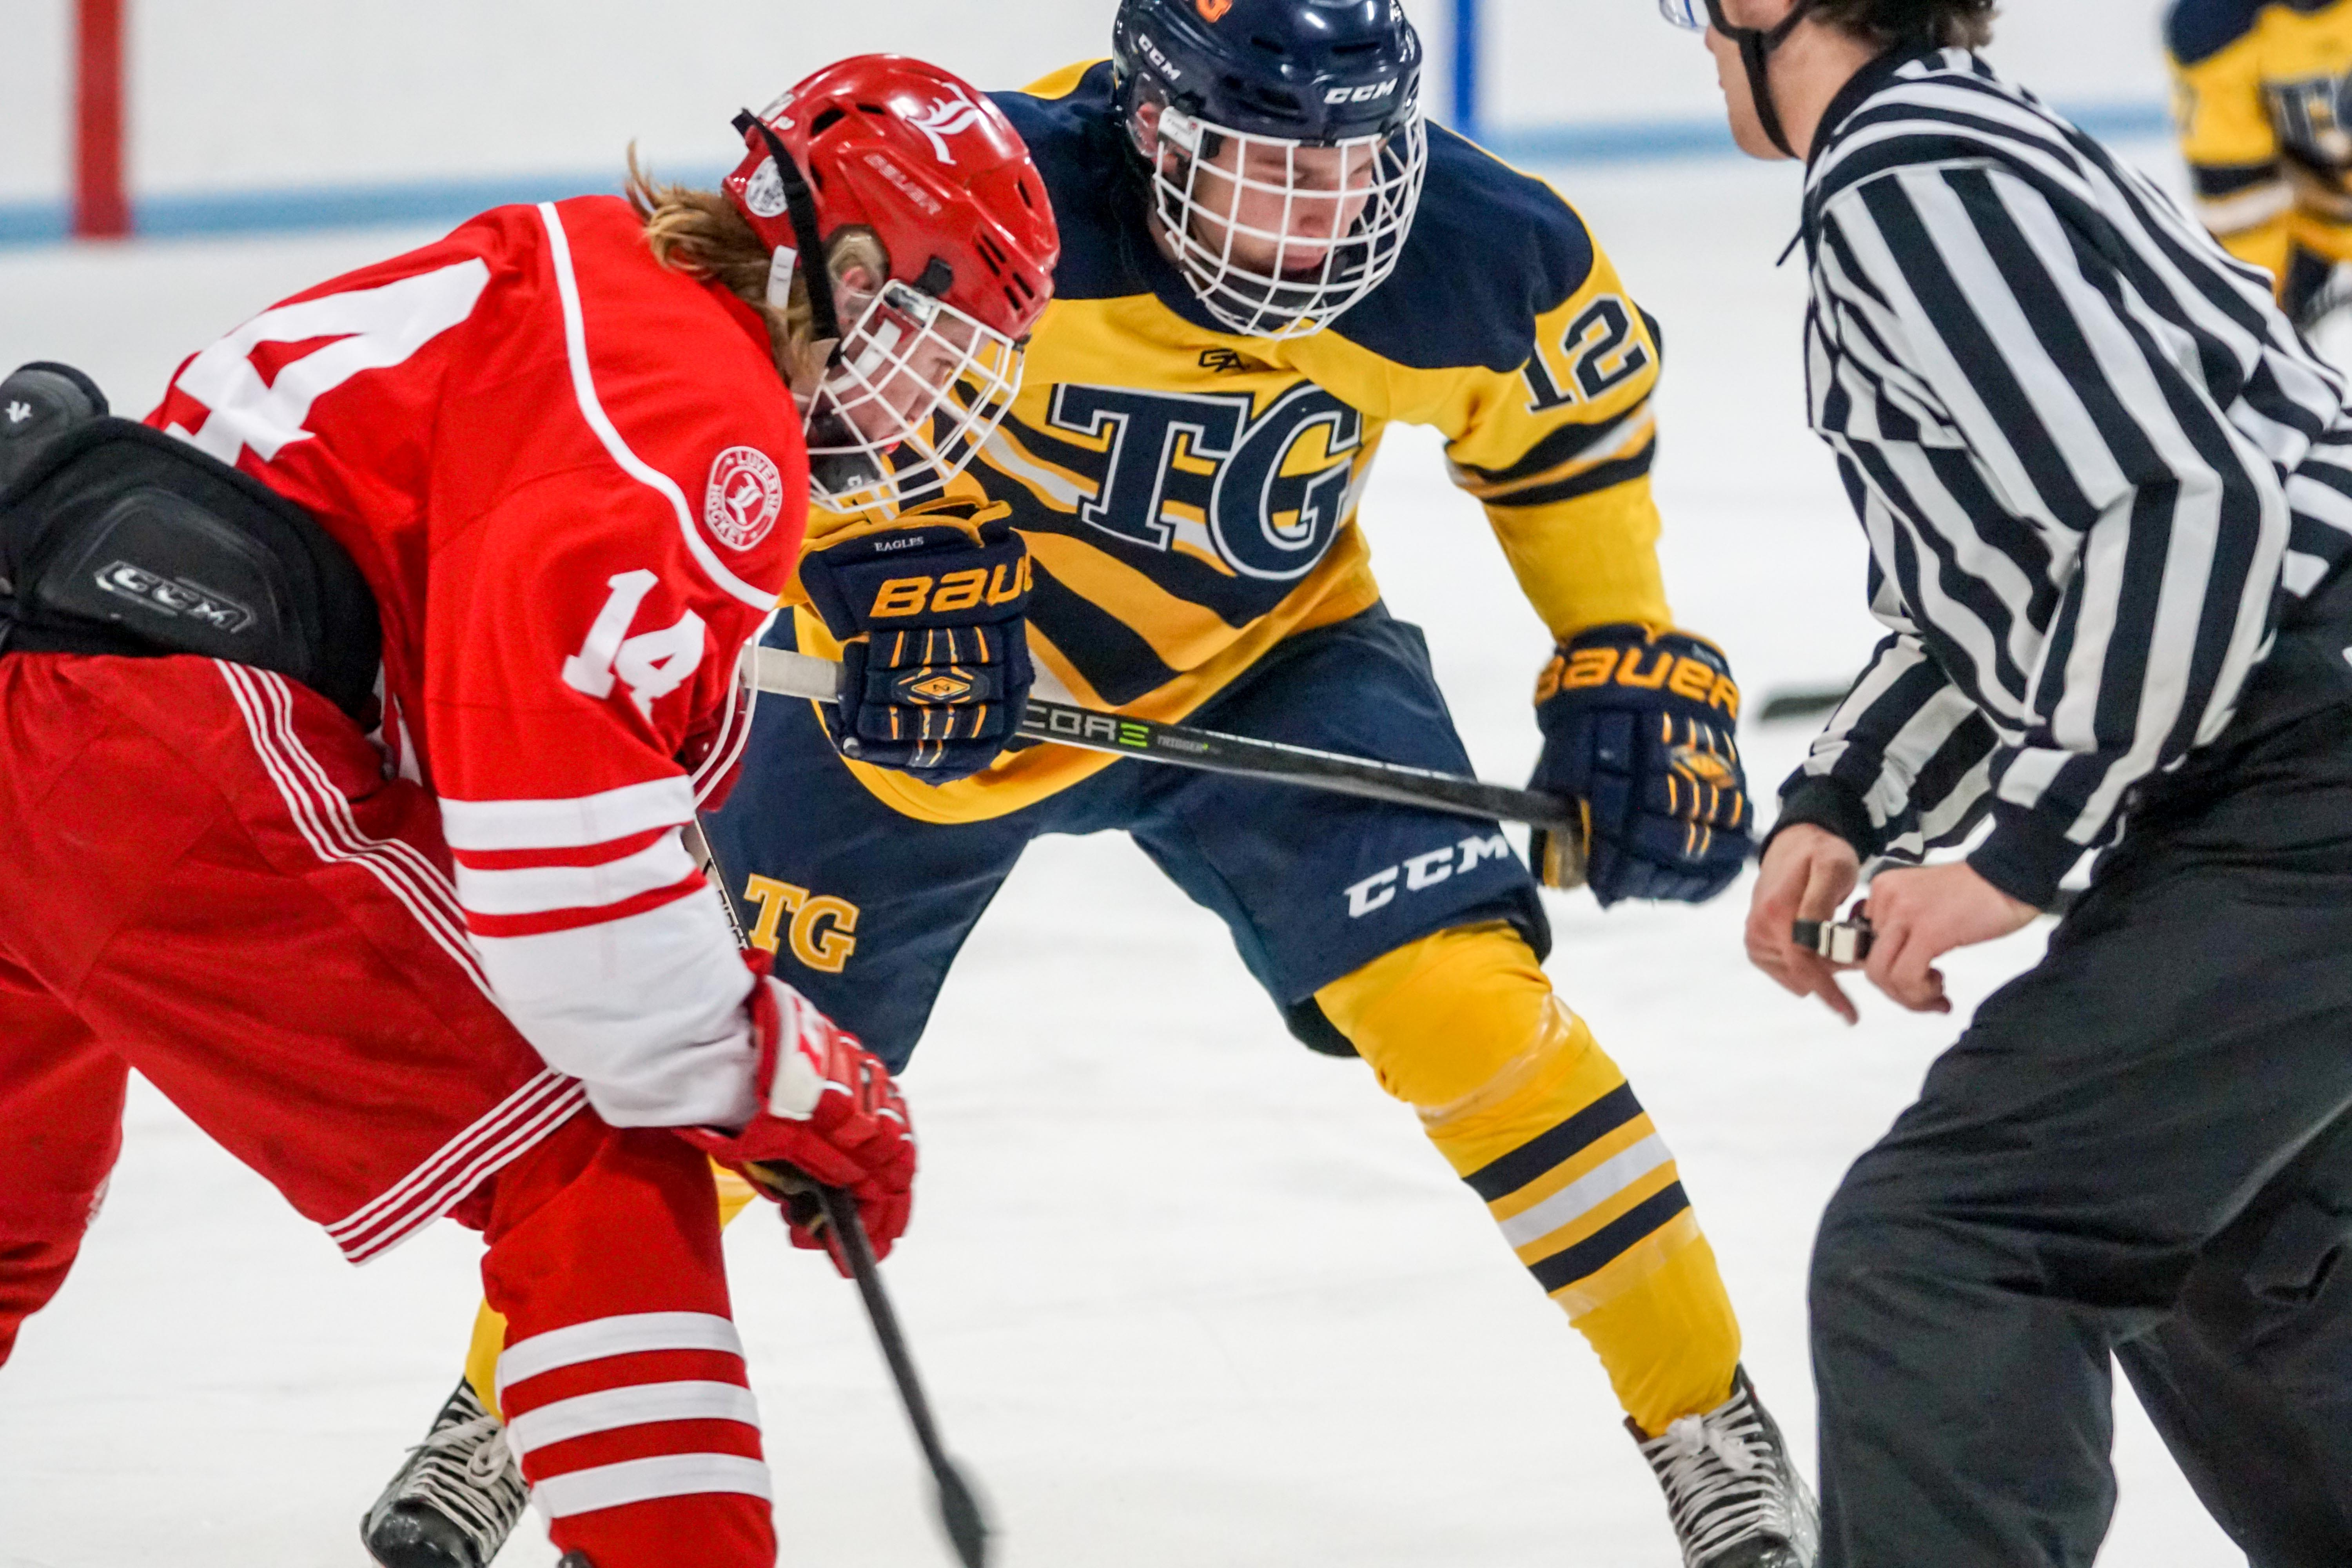 MN H.S.: Totino-Grace Hands Luverne Its First Loss Of The Season